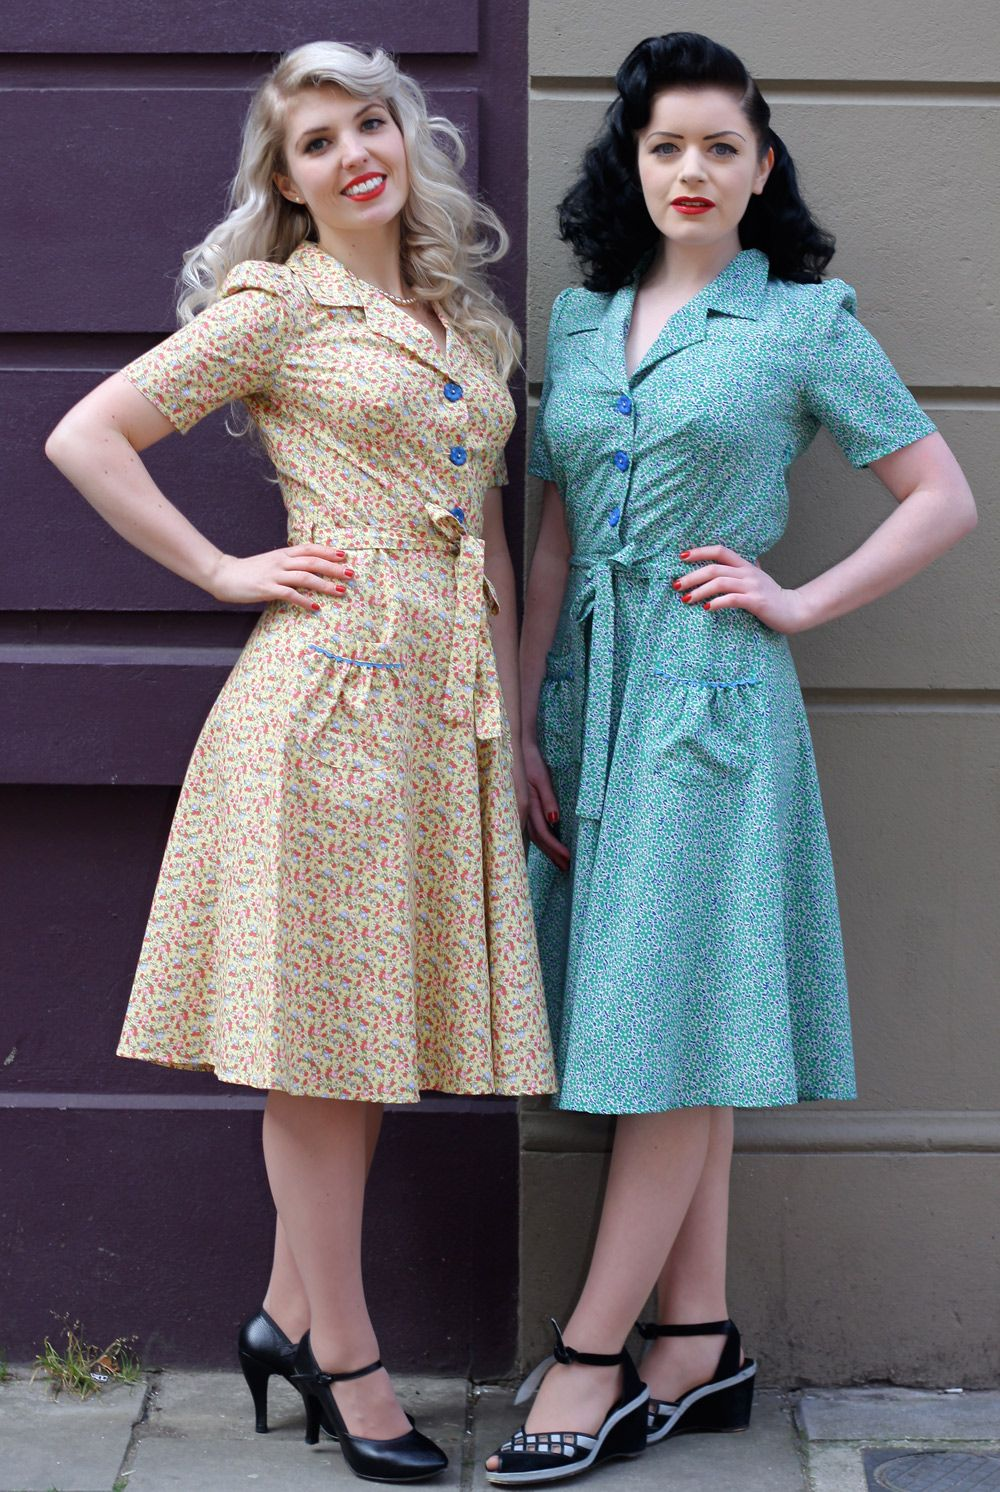 1940 39 S Style Day Dresses Tara Starlet 1940 39 S Pinterest 40s Style Vintage Hair And Girls